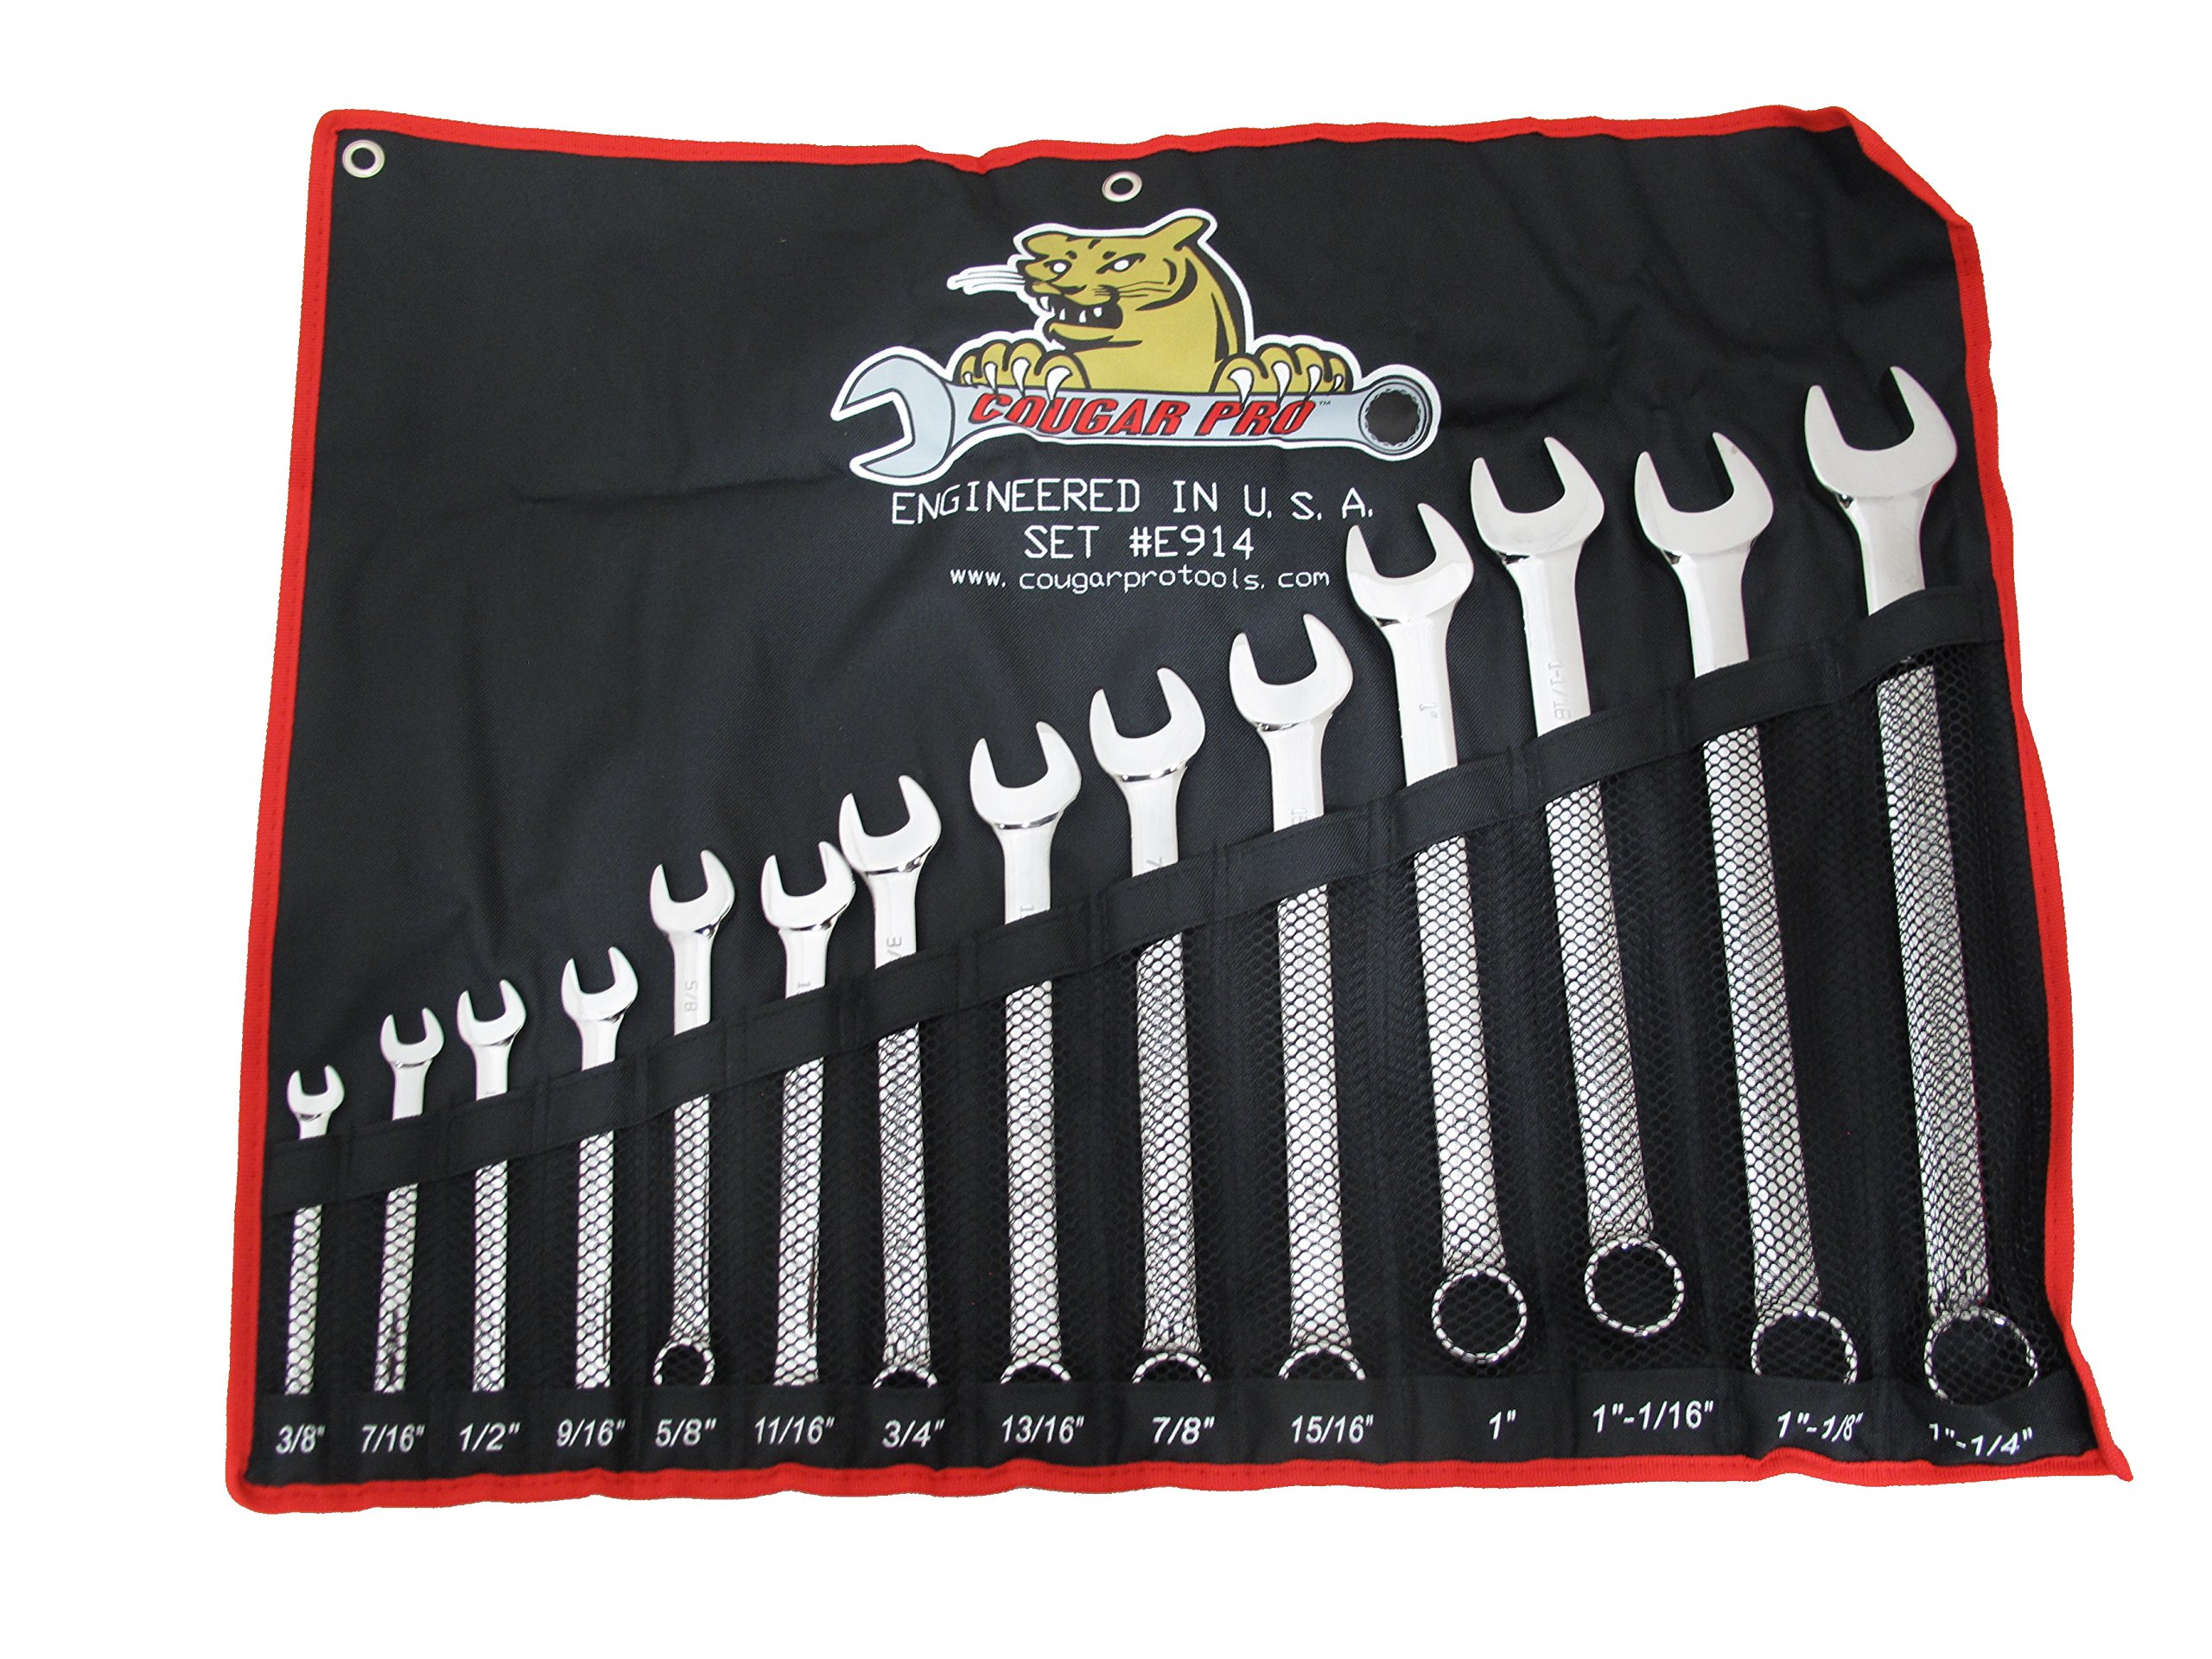 Cougar Pro E914 SAE Full Polish Combination Wrench Set, 3/8'' to 1-1/4'' (14-Piece)